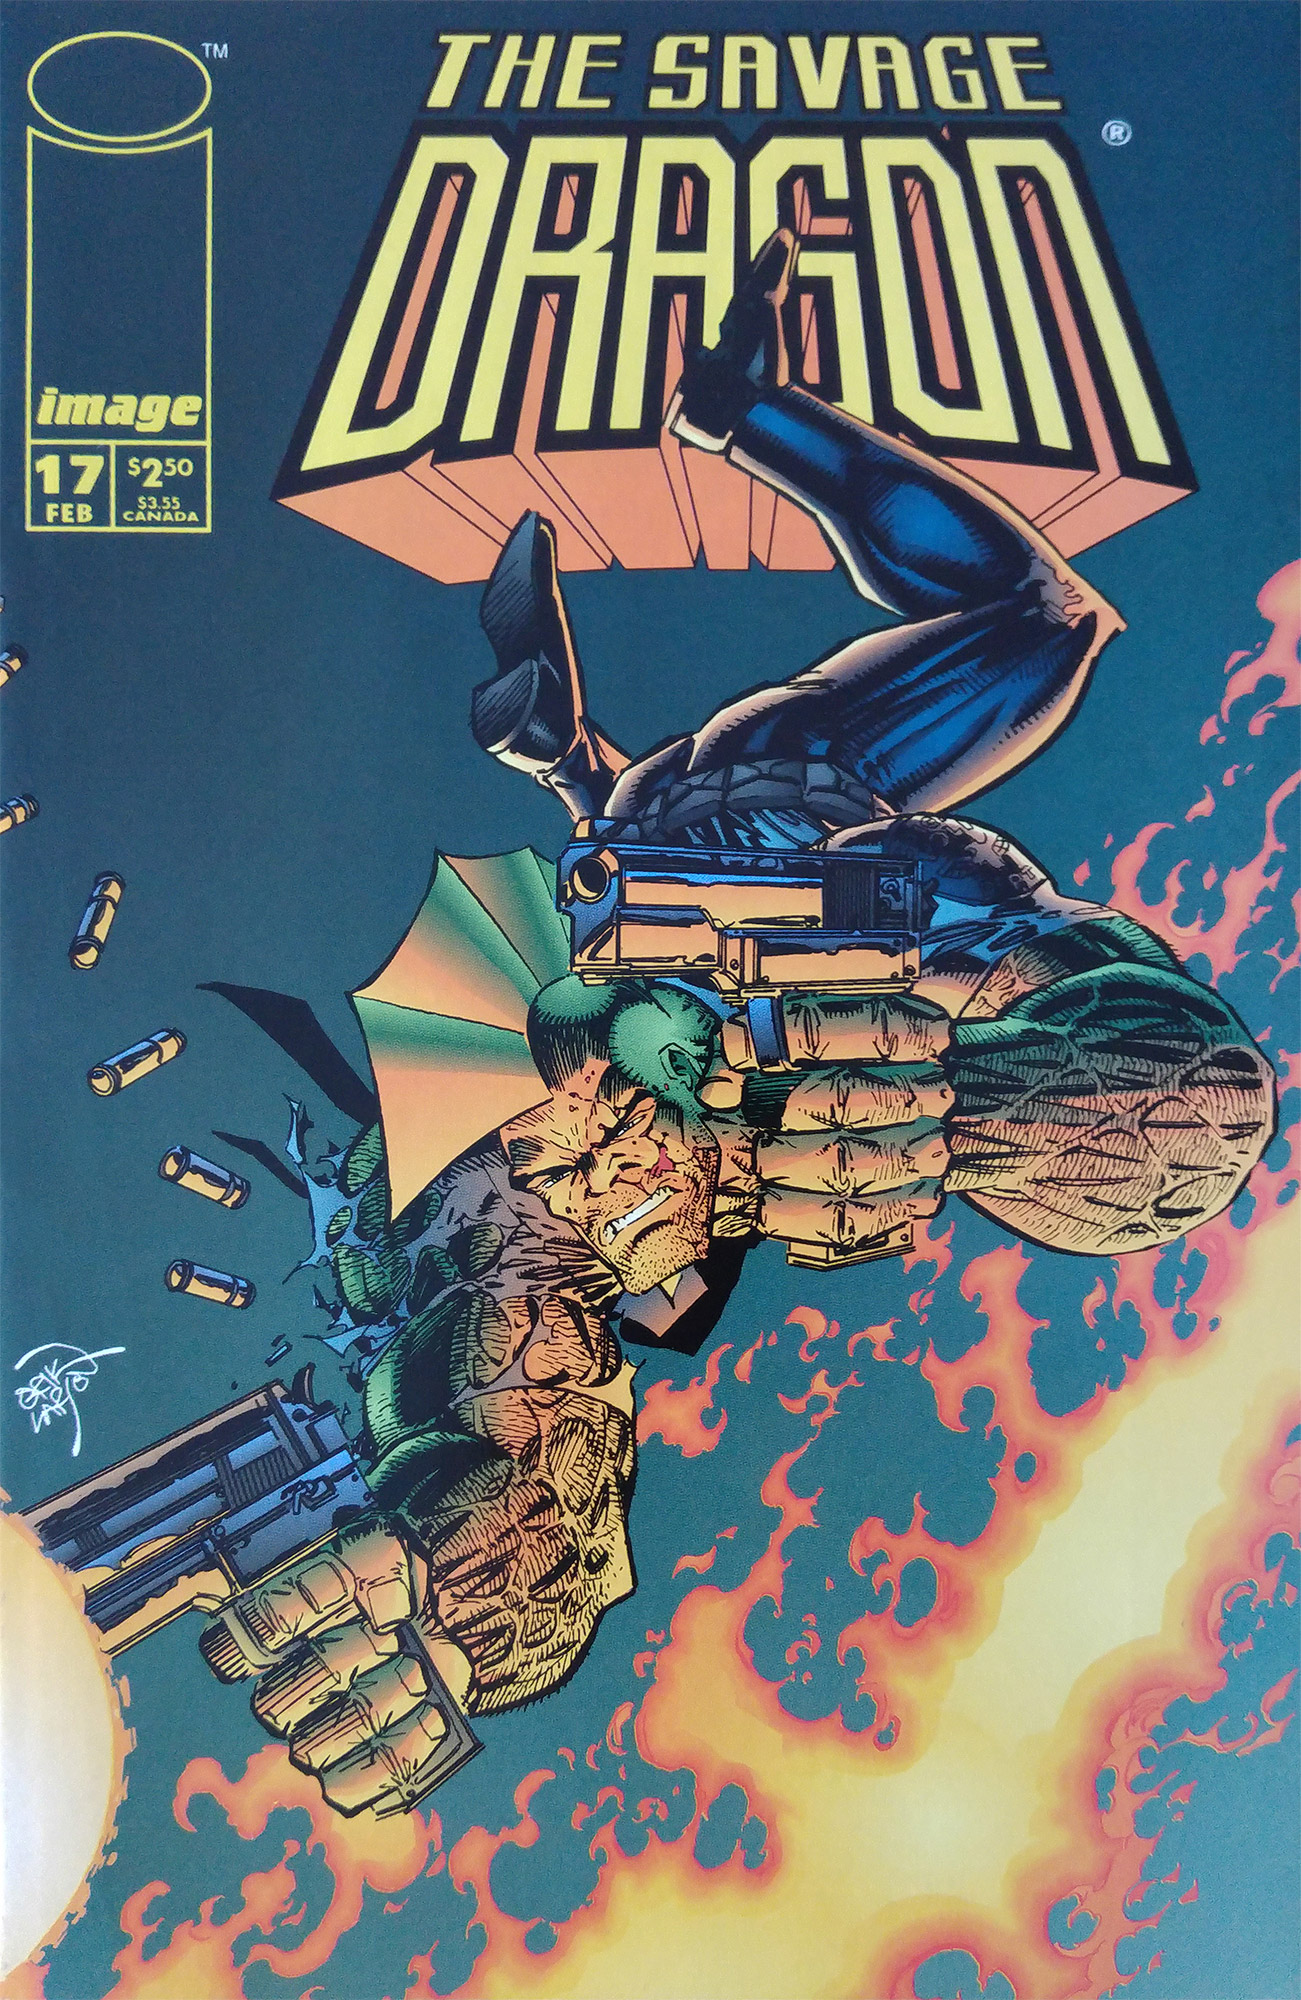 Cover Savage Dragon Vol.2 #17